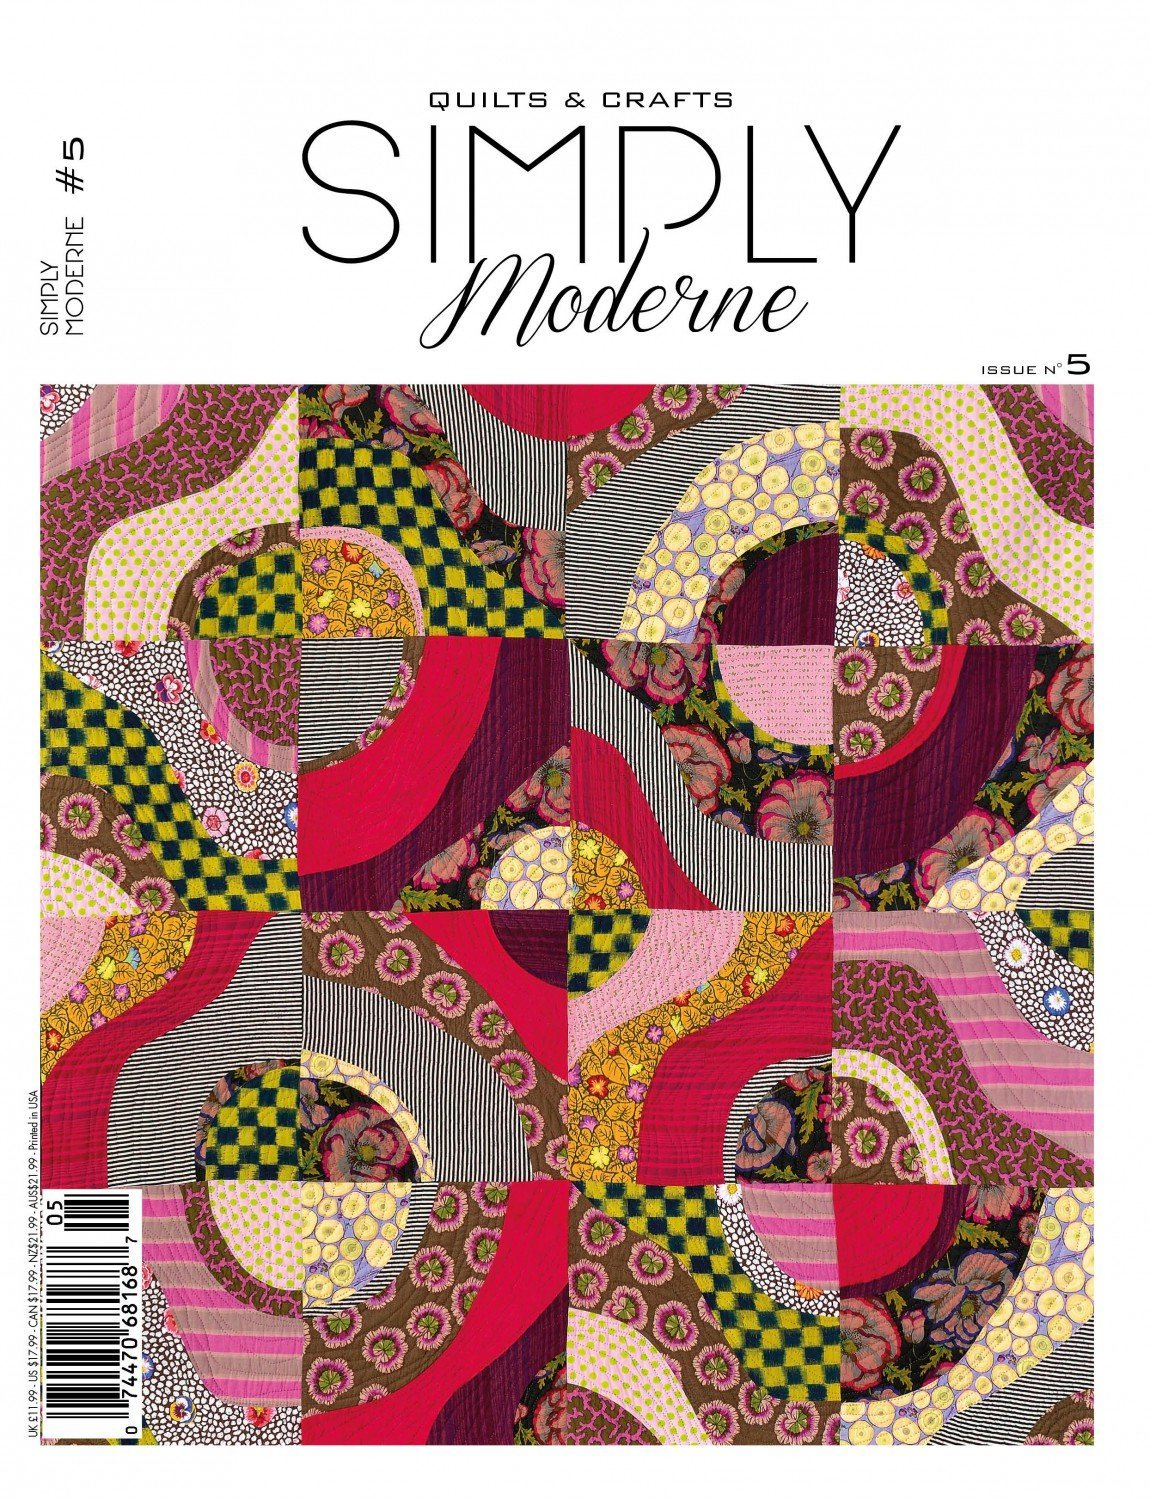 Quilts & Crafts Simply Moderne Issue No. 5 PDF